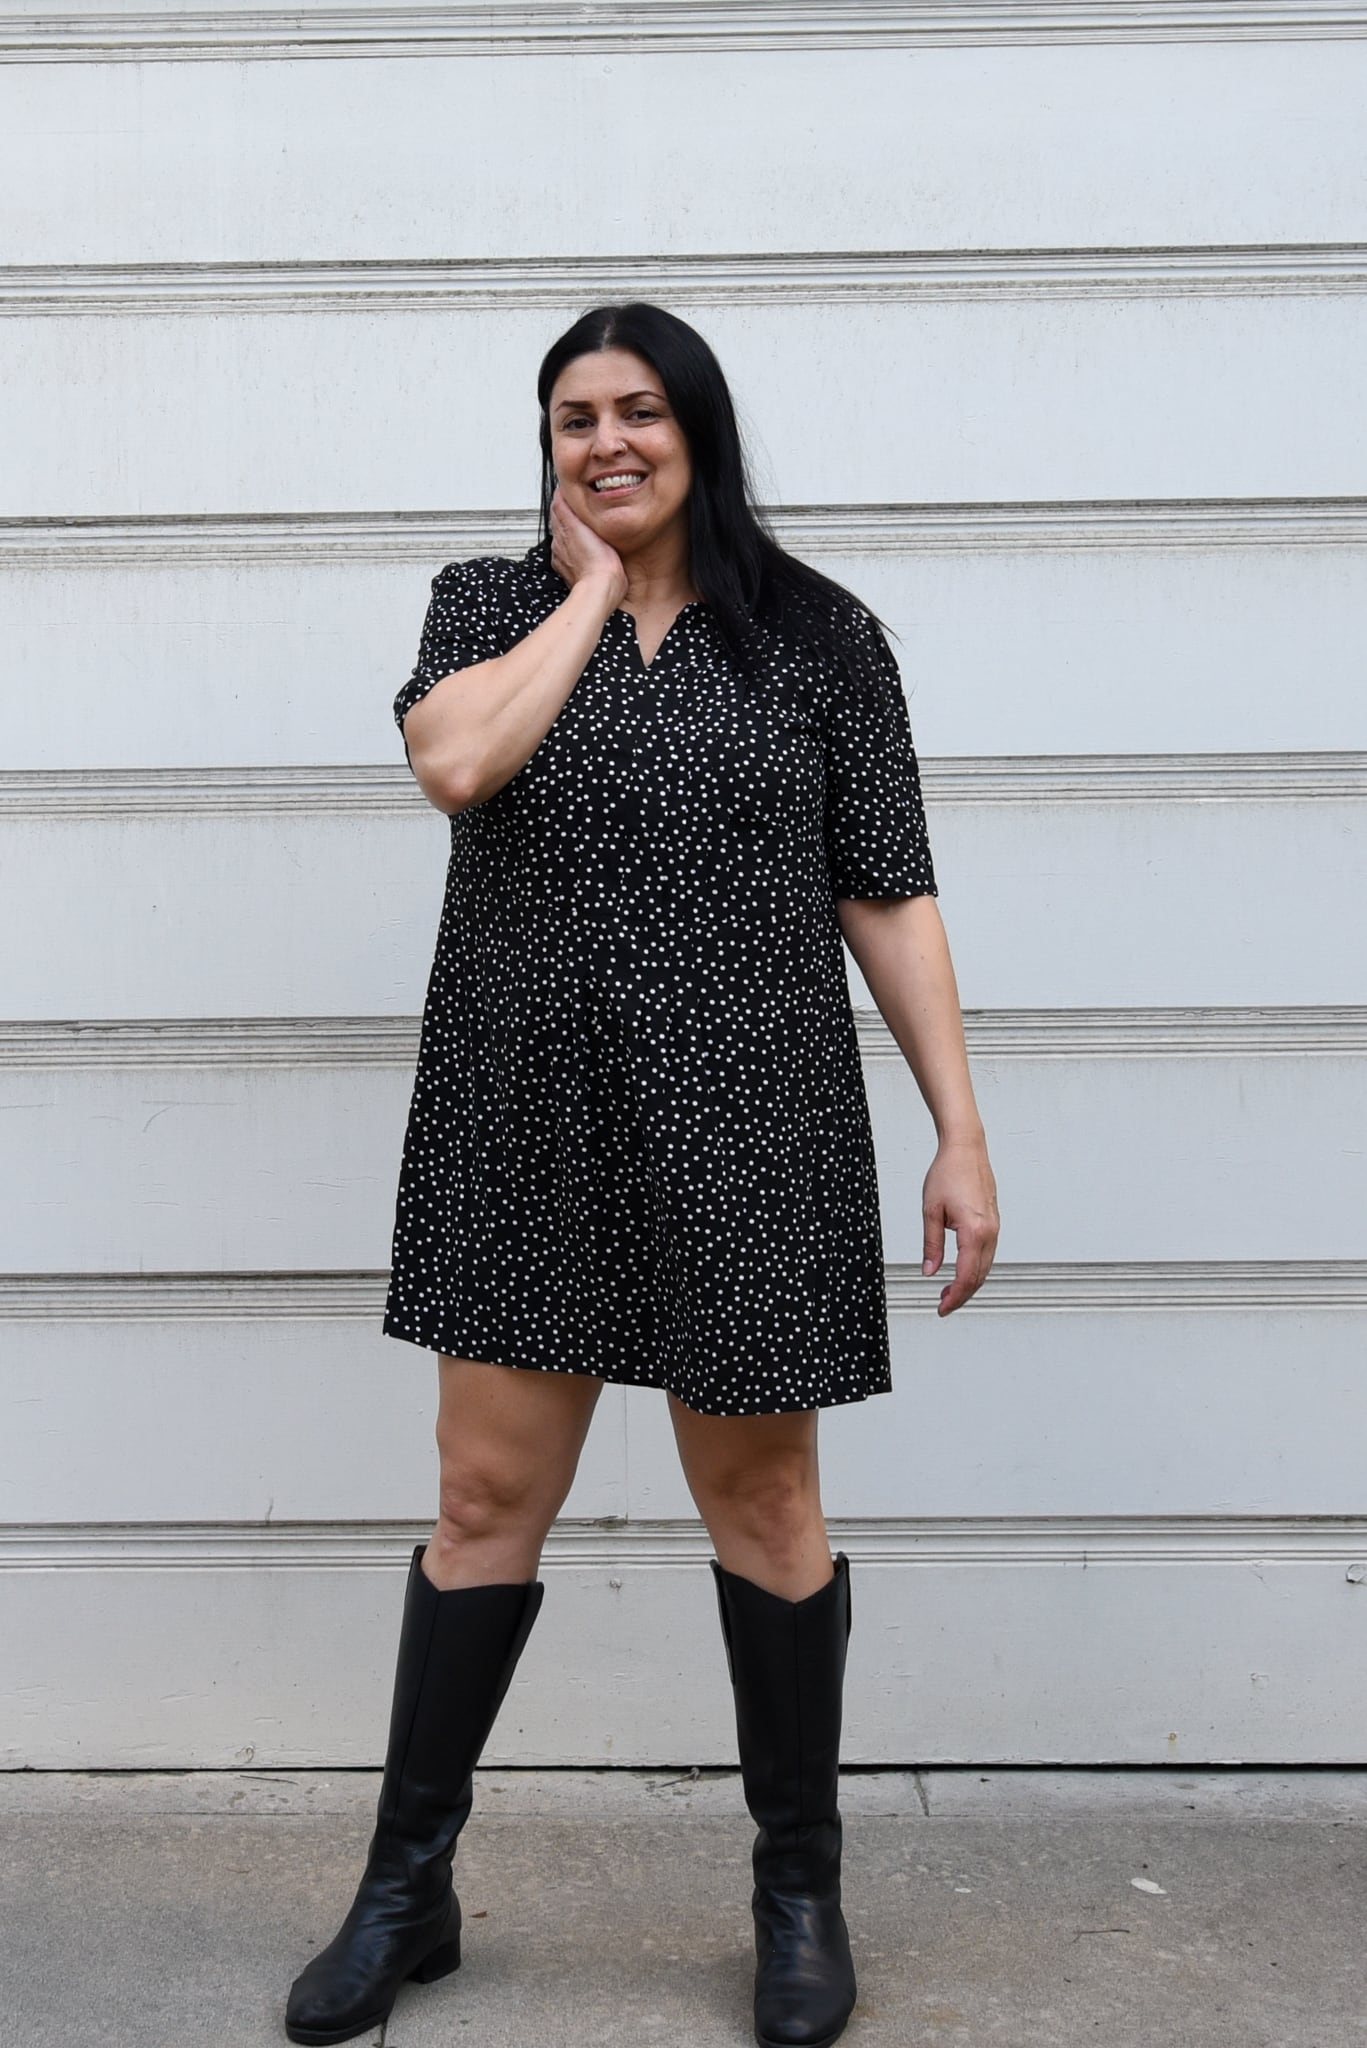 Image of woman standing in front of a white background wearing a polka dotted black and white mini dress.